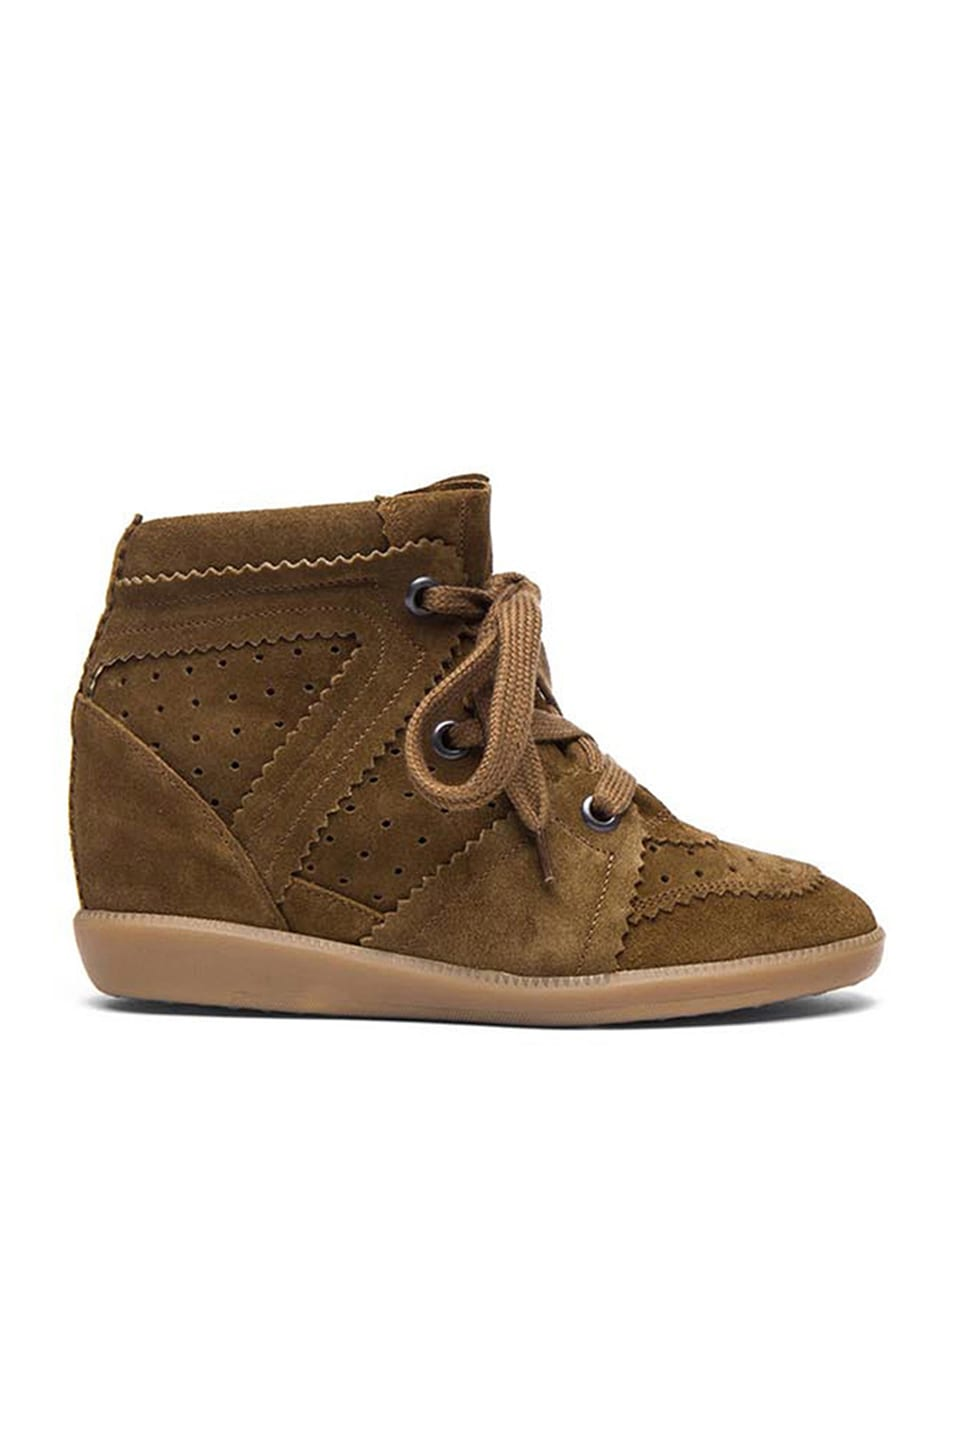 Image 1 of Isabel Marant Bobby Calfskin Velvet Leather Sneakers in Camel